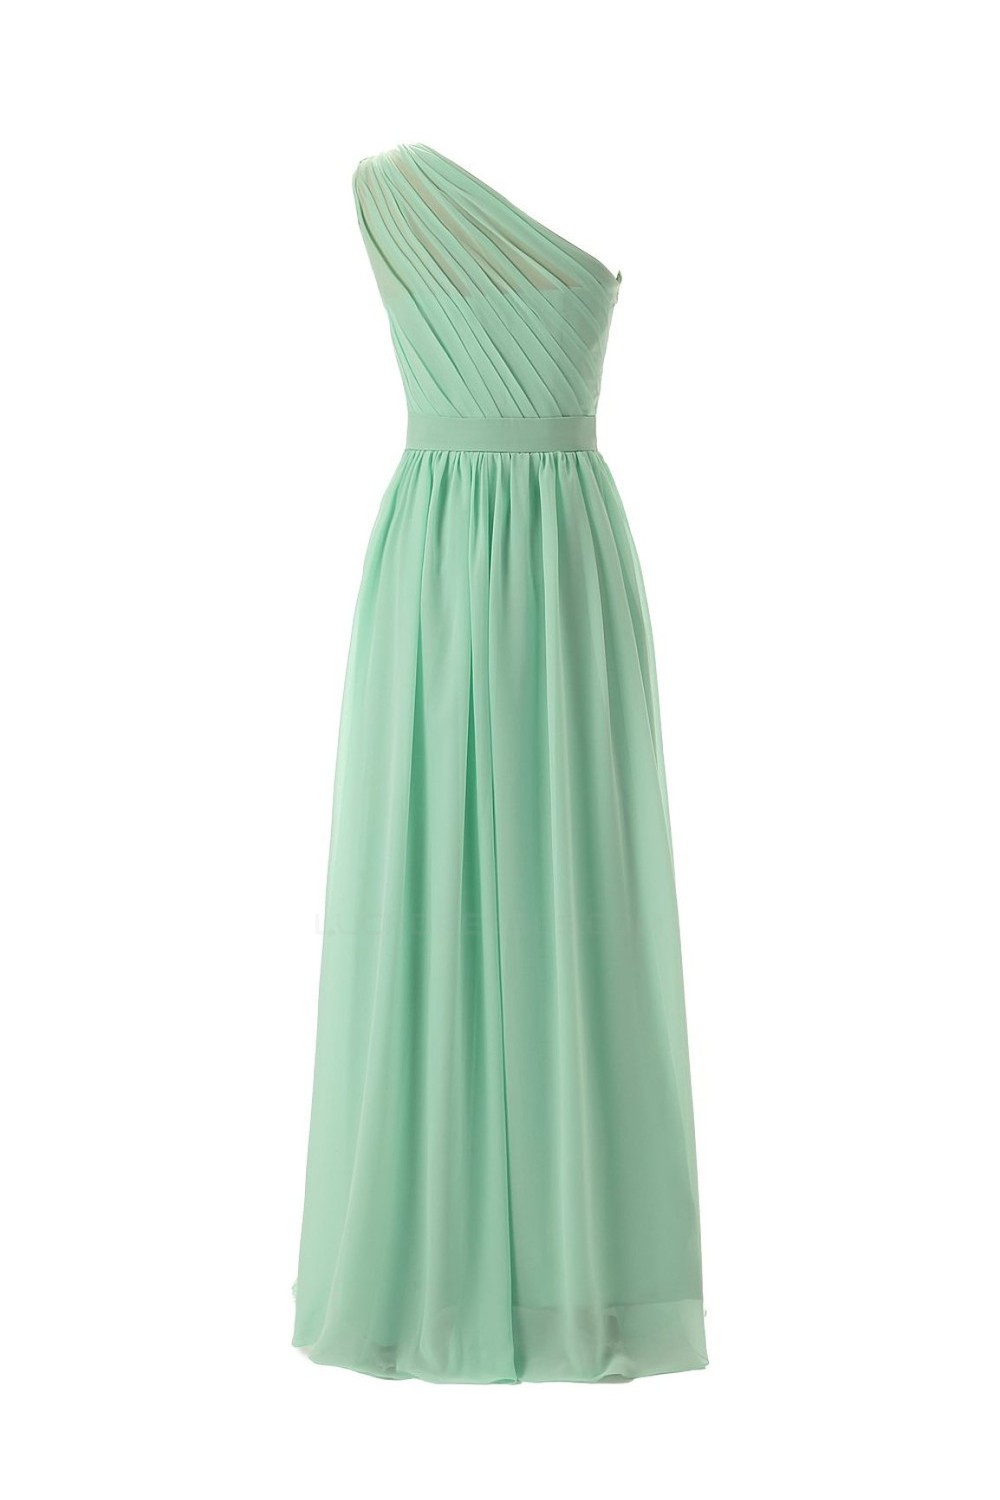 A-Line One-Shoulder Mint Green Long Chiffon Bridesmaid Dresses ...